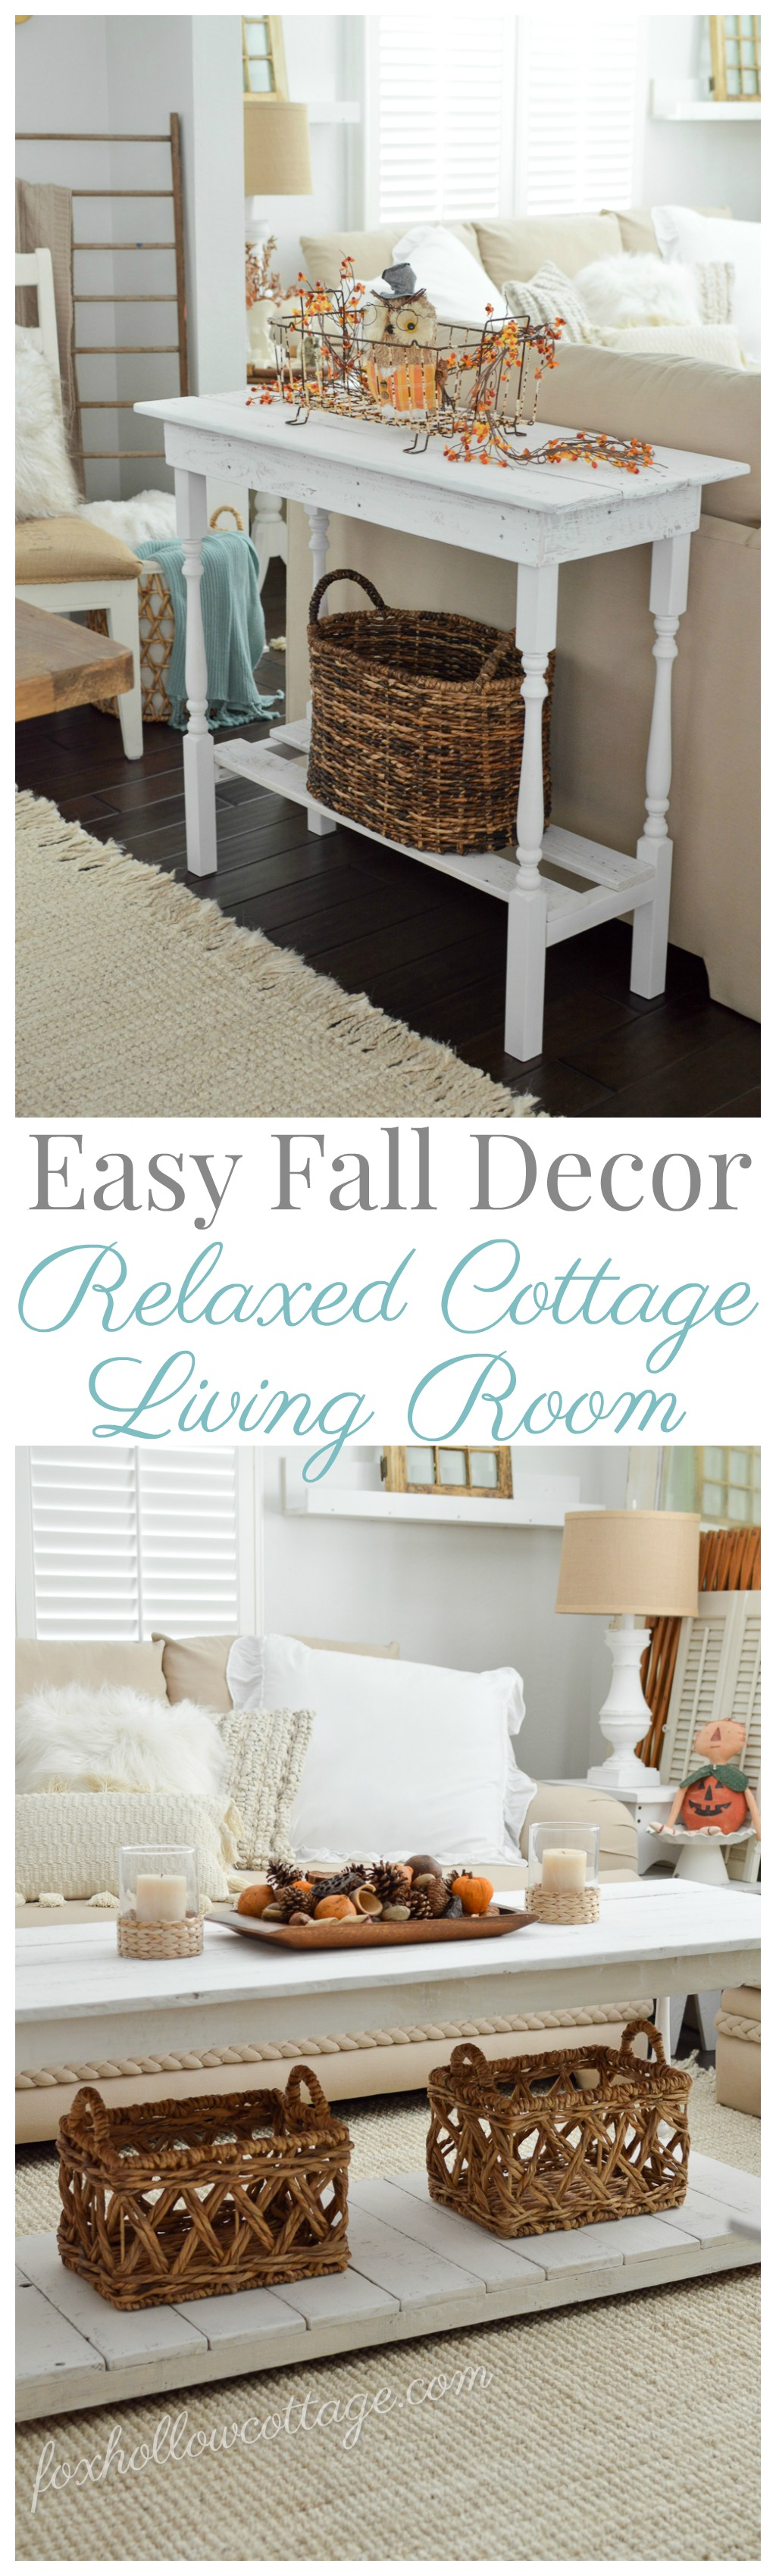 Easy, relaxed cottage living room - simple Fall decorating with white, neutrals, texture and splashes of Autumn orange.